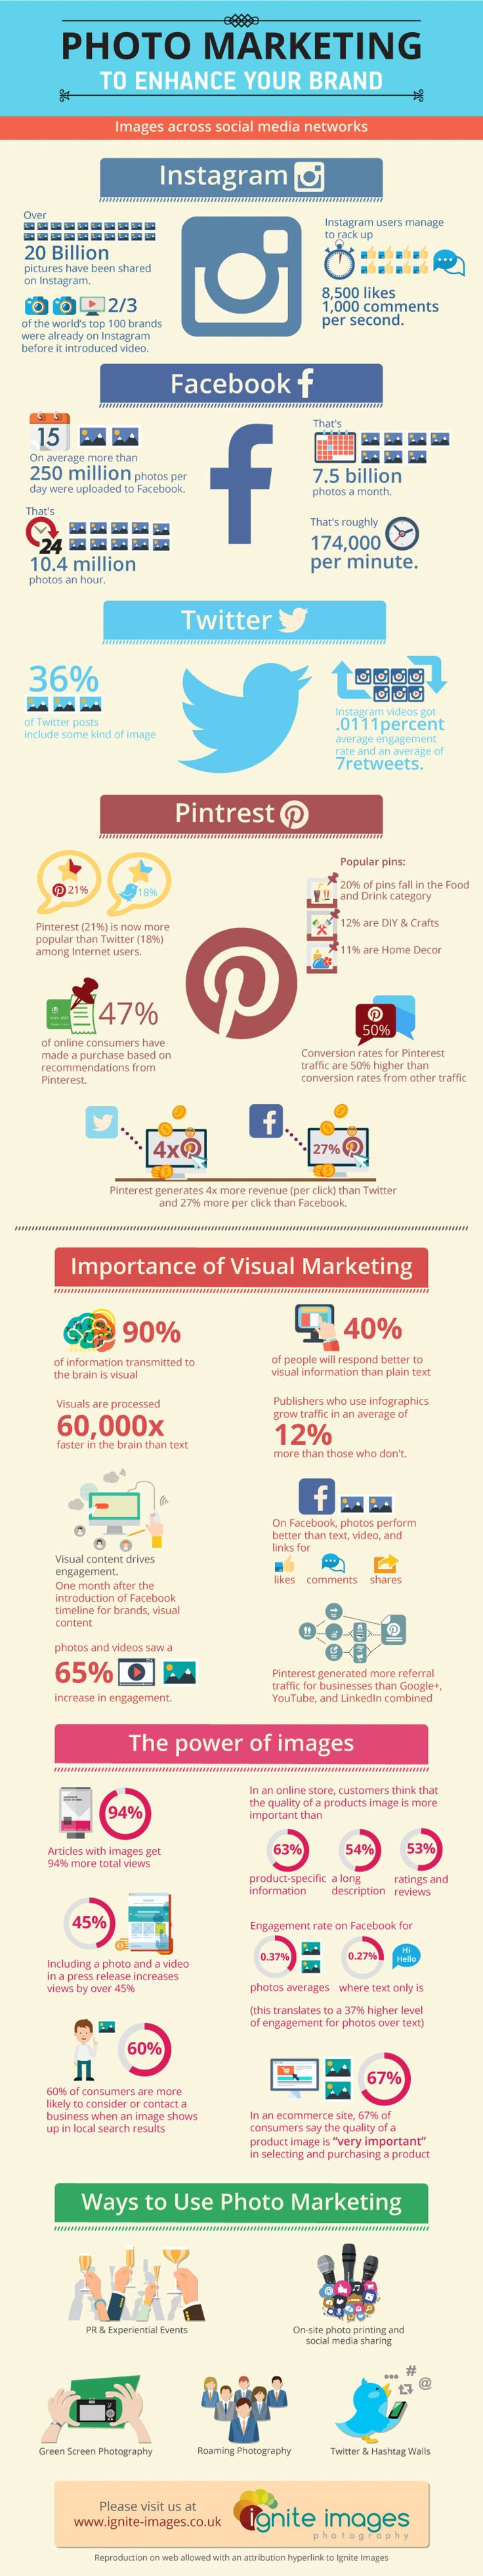 Photo Marketing to Enhance Your Brand #infographic